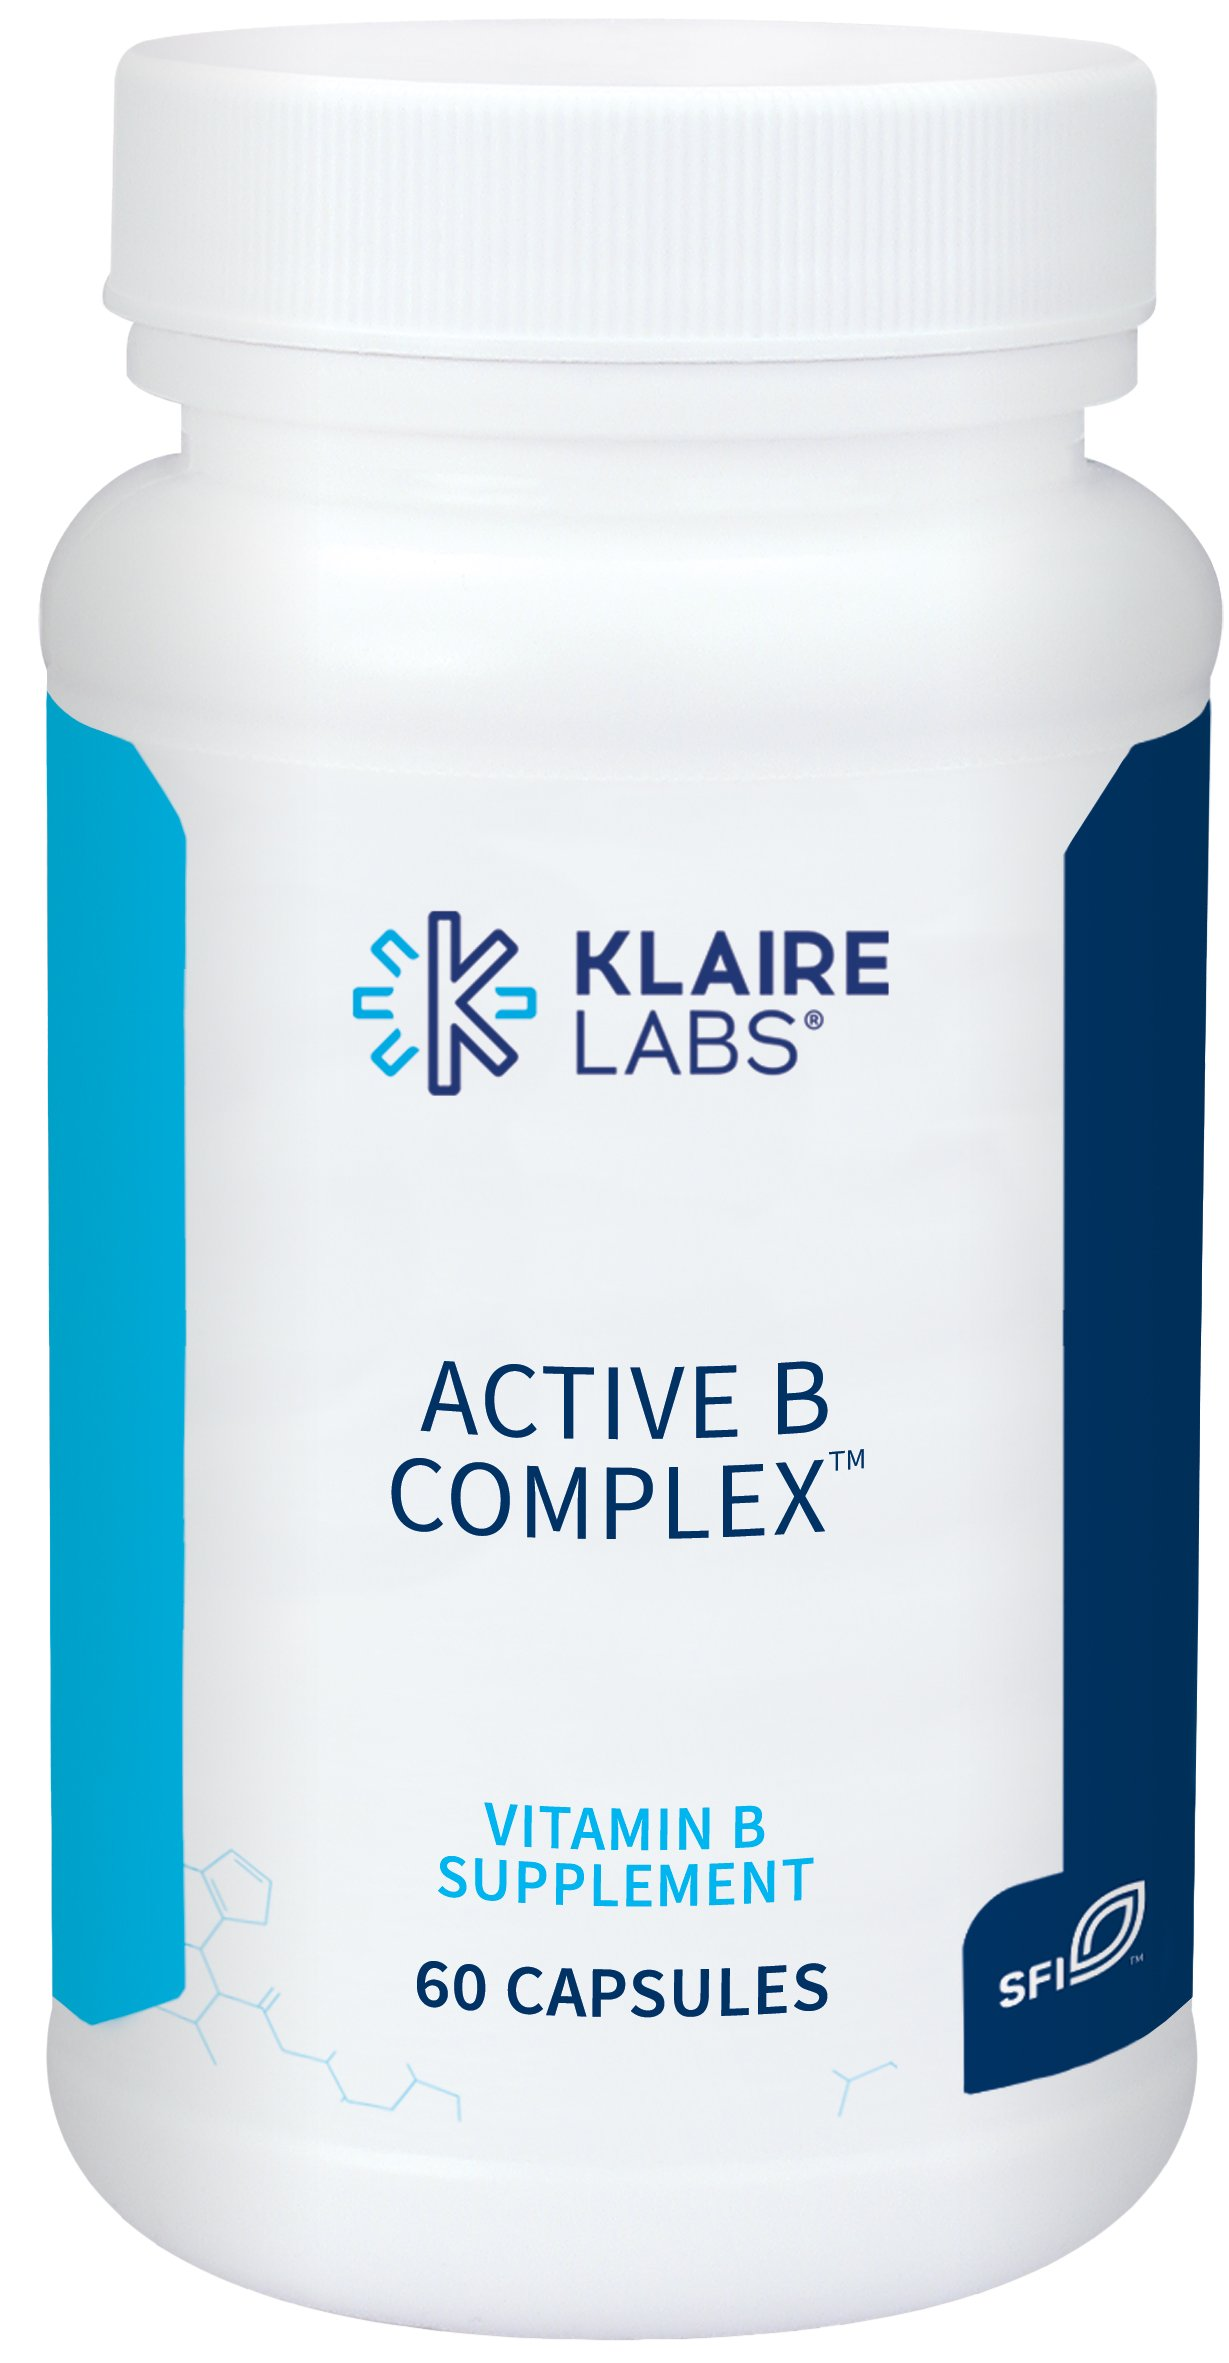 Klaire Labs Active B Complex - High Potency B Vitamins with Metafolin Folate, B12 as Methylcobalamin & B6 Benfotiamine (60 Capsules) by Klaire Labs